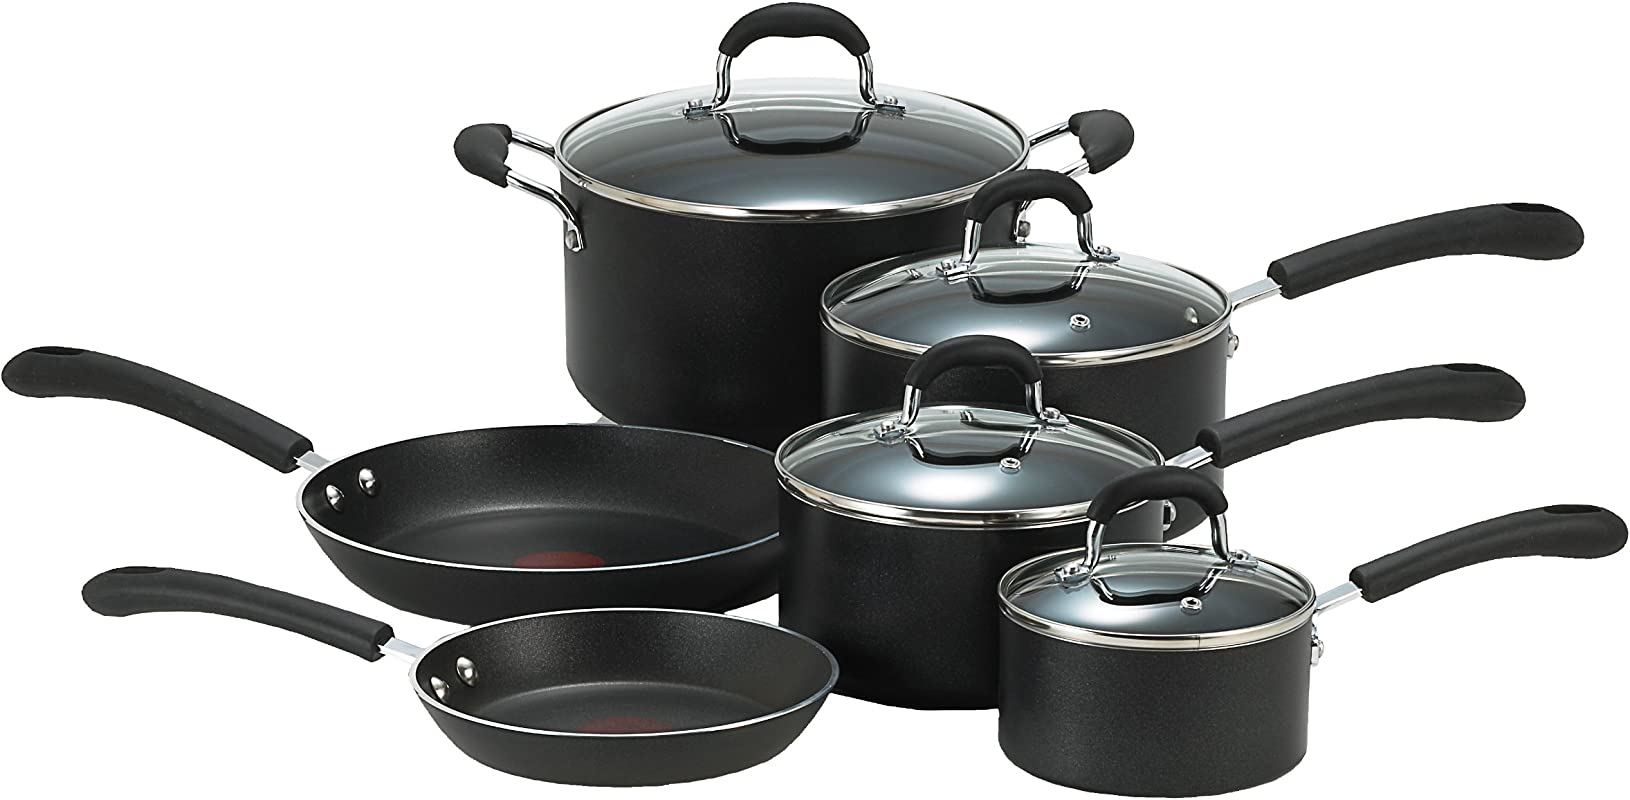 T Fal E938SA Professional Total Nonstick Oven Safe Thermo Spot Heat Indicator 10 Piece Dishwasher Safe Cookware Set Black